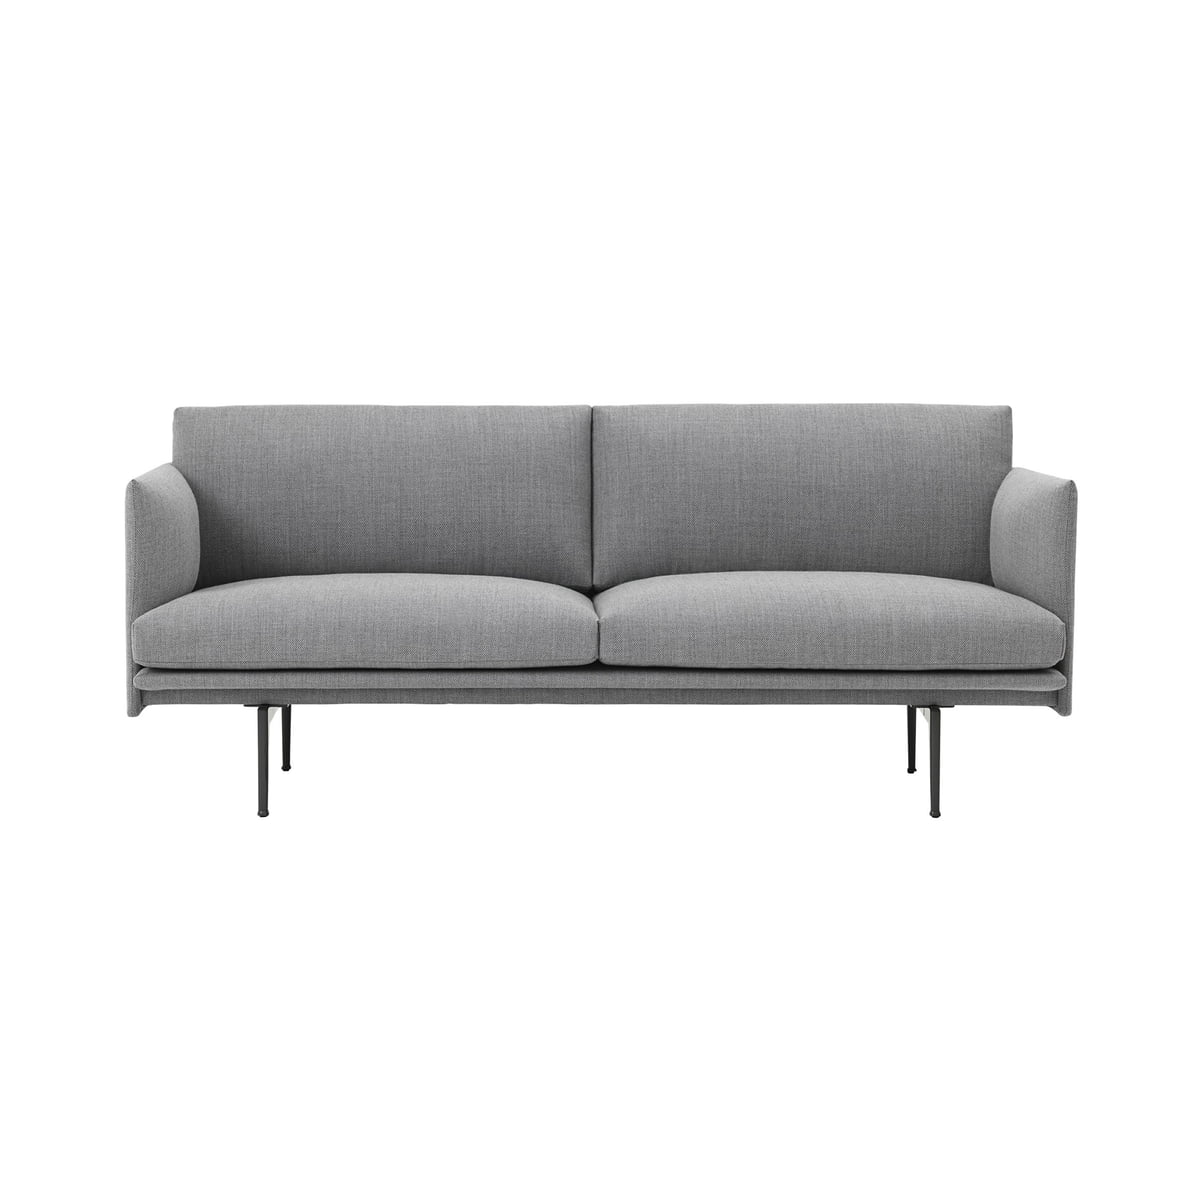 140 cm outline sofa studio muuto connox. Black Bedroom Furniture Sets. Home Design Ideas